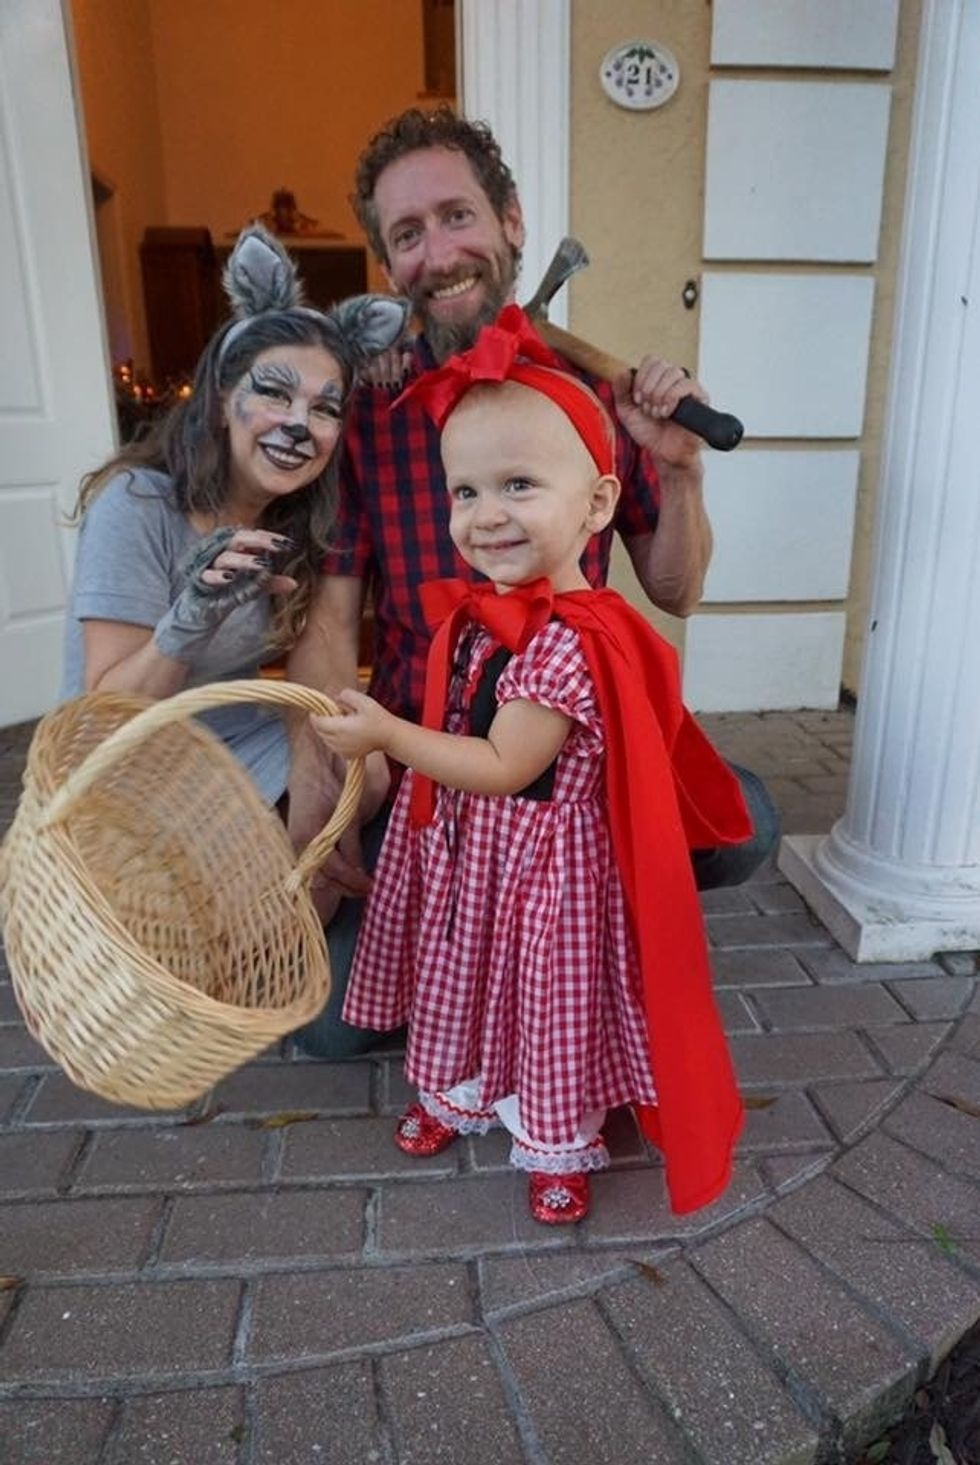 40 Halloween costume ideas the whole family will love - Motherly